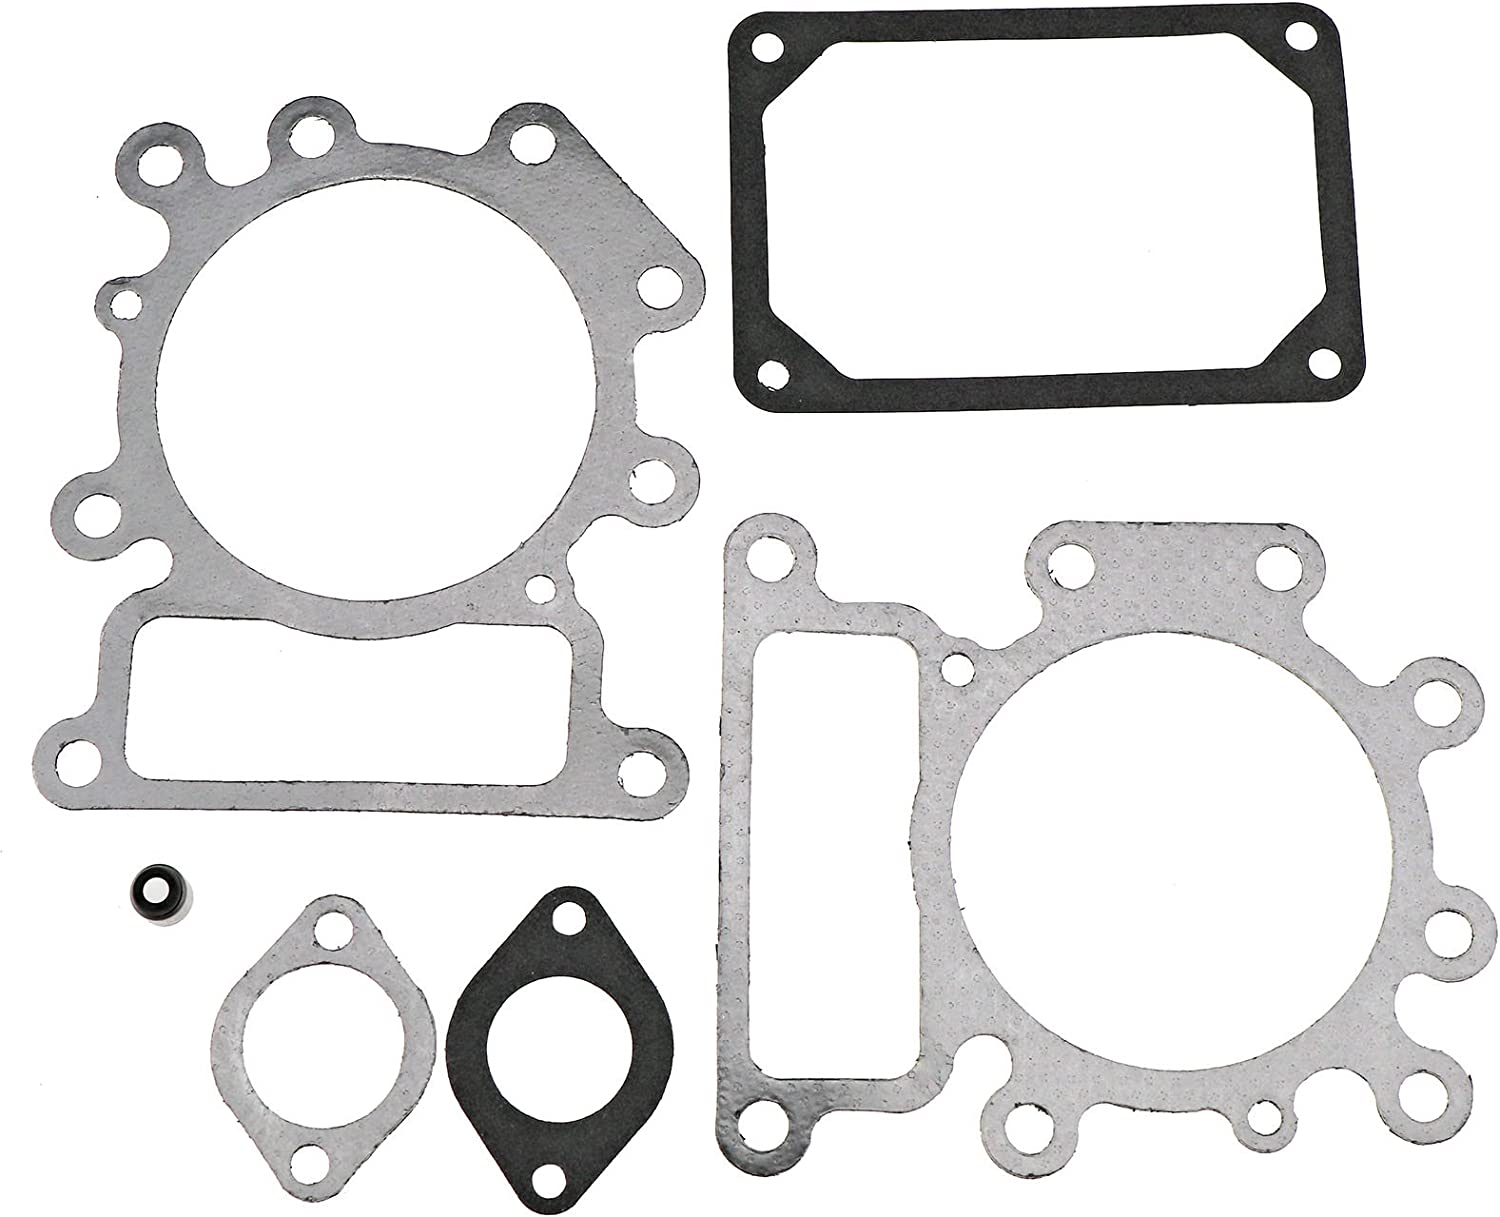 Paddsun Valve Gasket Set Replacement for Briggs /& Stratton 794152 Replaces # 690190